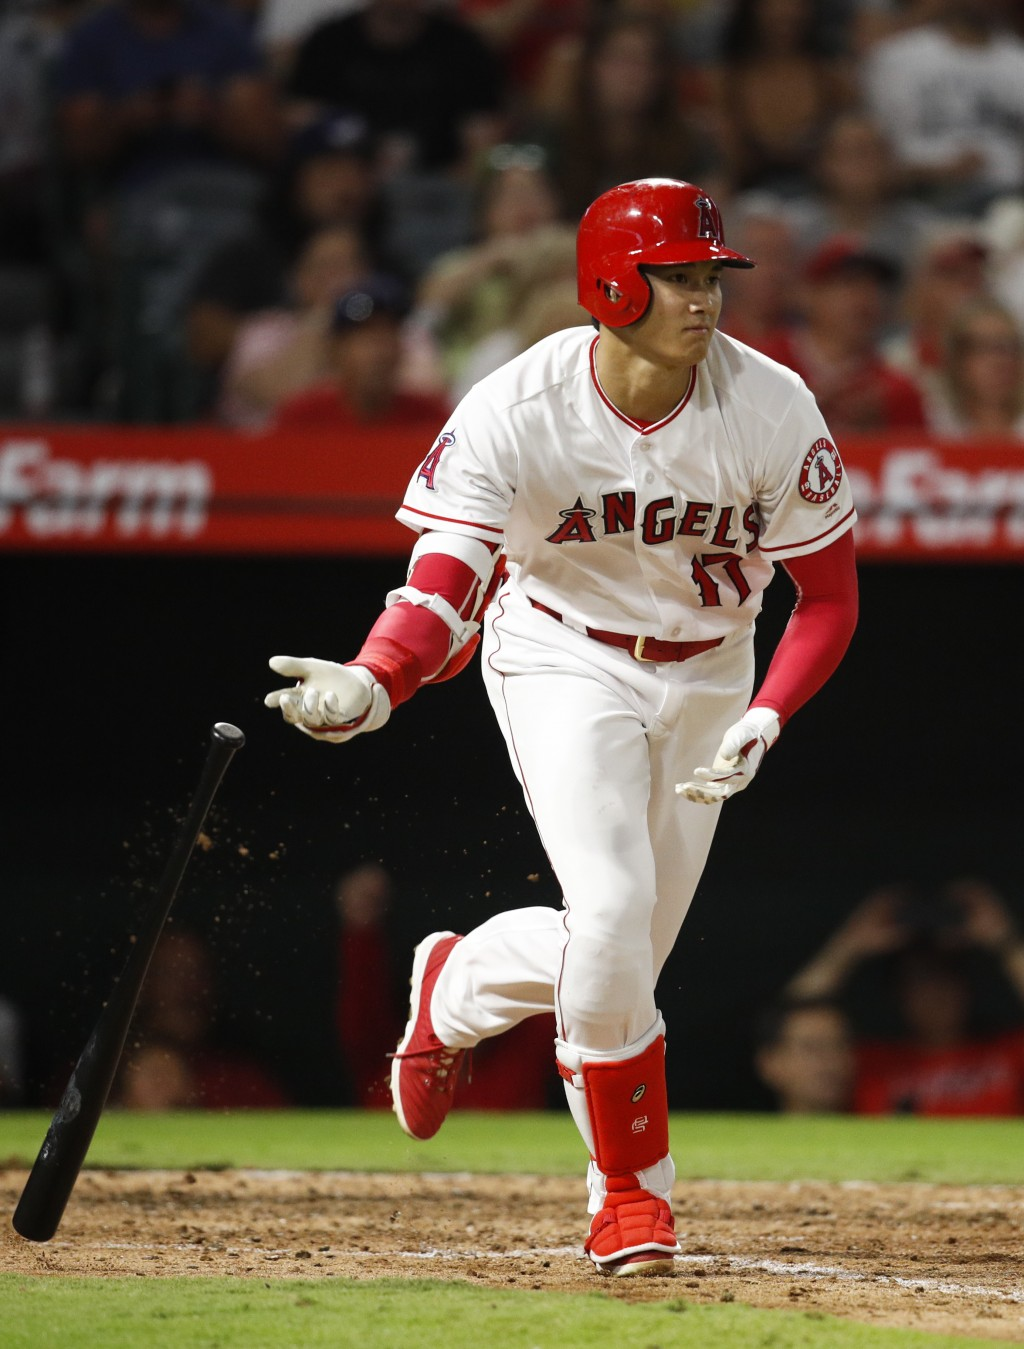 Los Angeles Angels' Shohei Ohtani, of Japan, tosses his bat after hitting a single during the sixth inning of a baseball game against the Seattle Mari